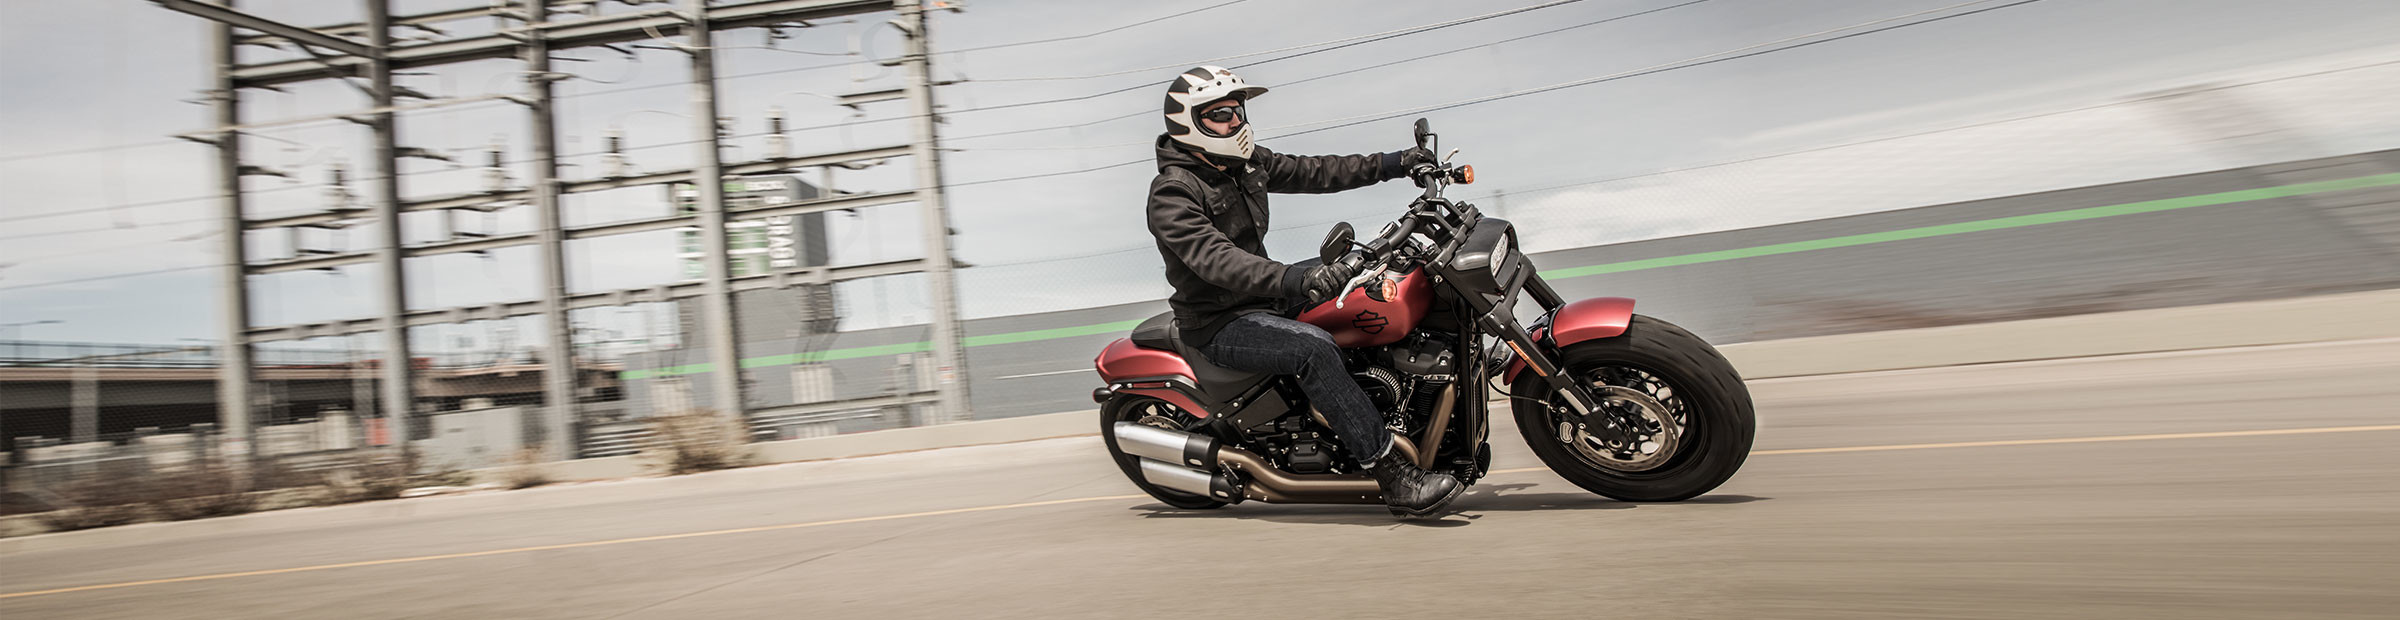 Schedule a Harley-Davidson® Test Ride At Brian's Valley Forge Harley-Davidson®